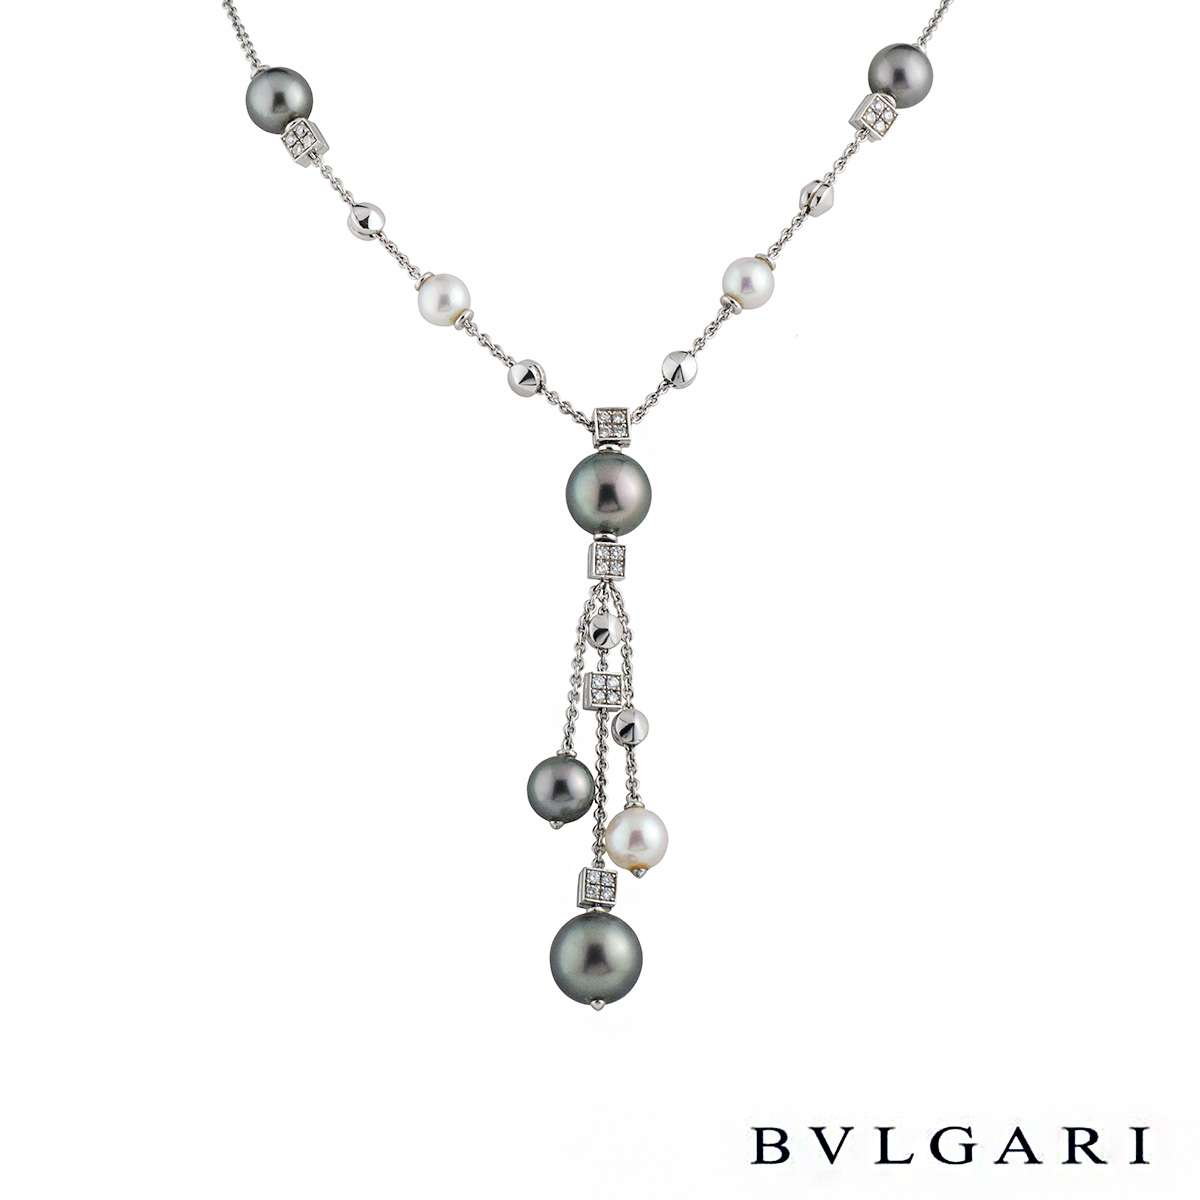 Bvlgari Lucea Diamond & Pearl Necklace